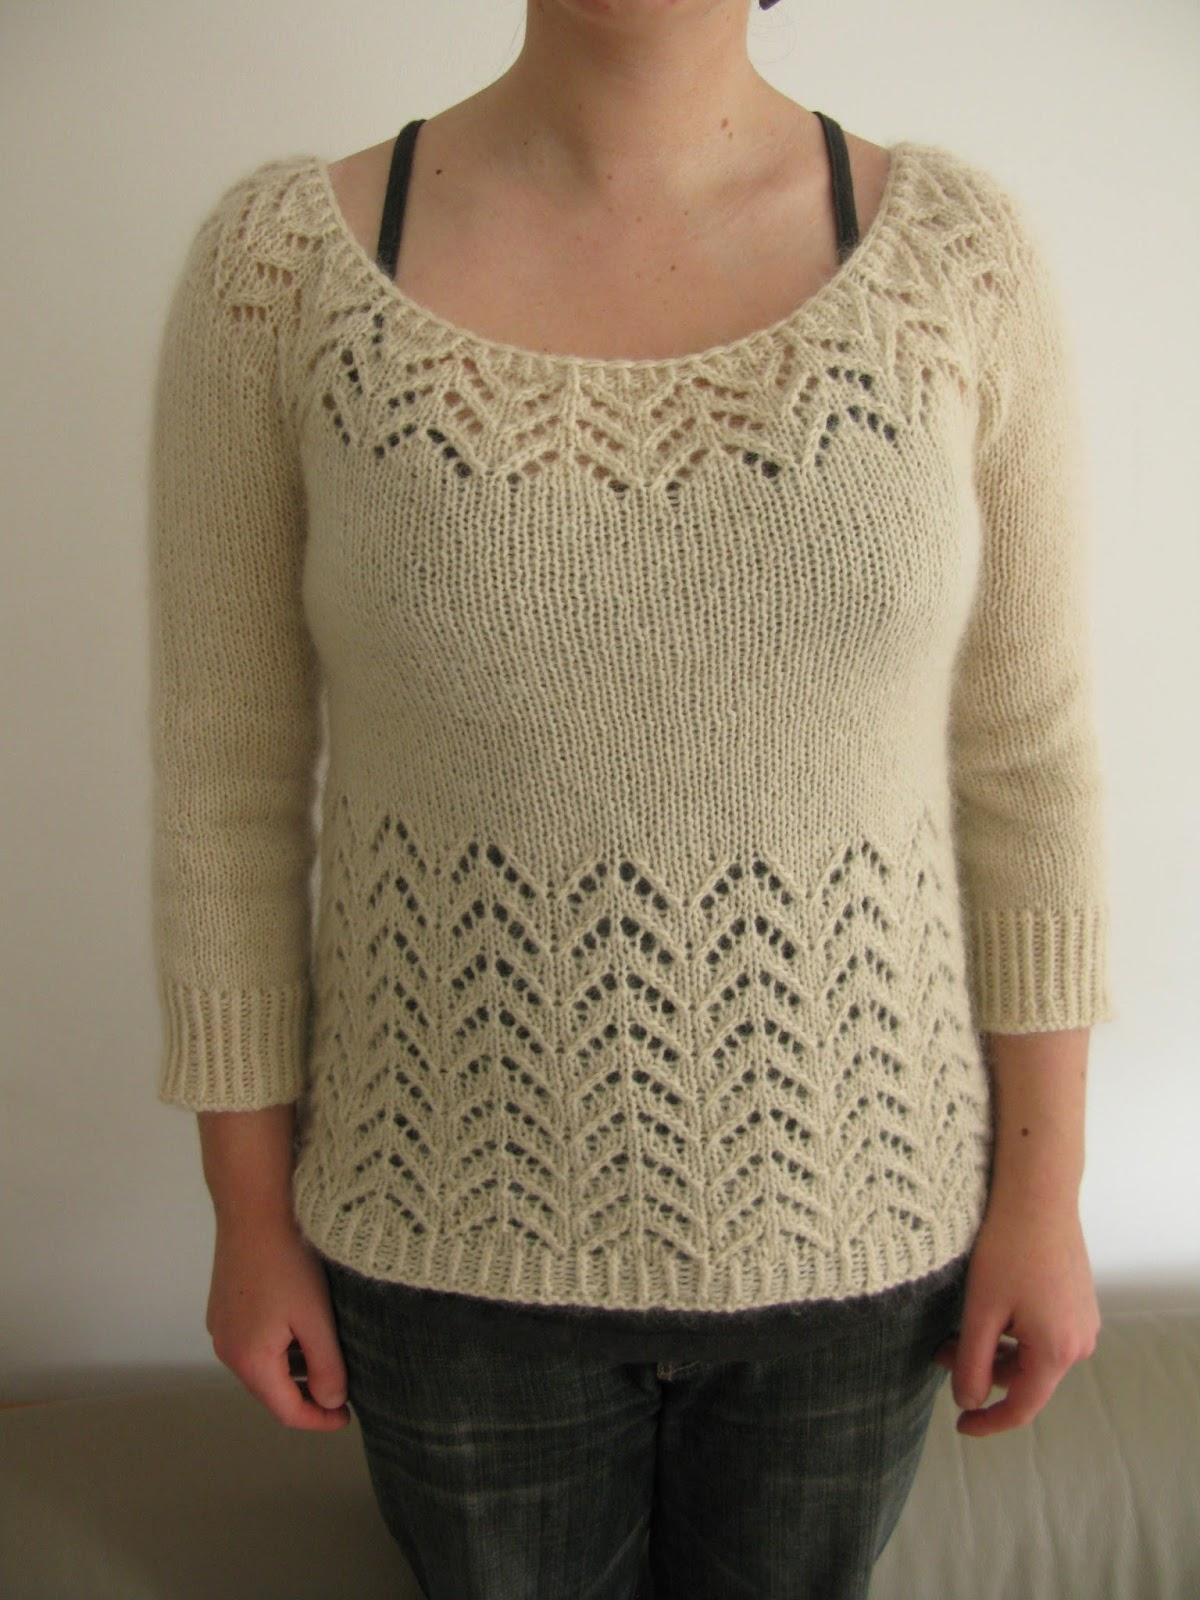 Lace Knitting Patterns For Sweaters : Littletheorem pattern gallery